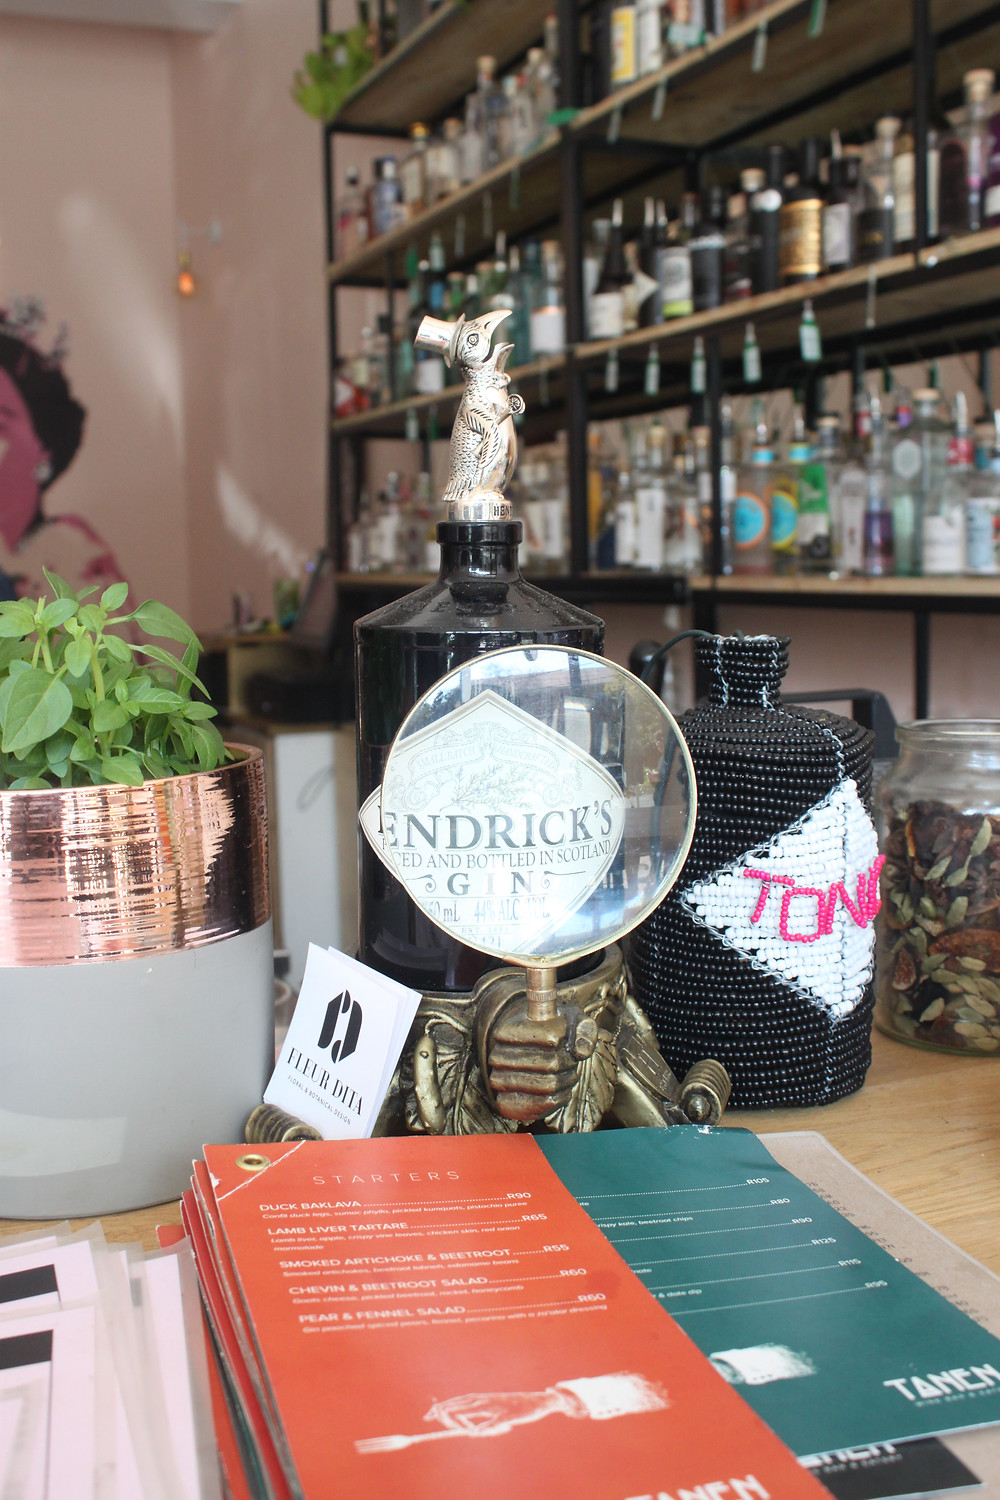 Tonic bar in Linden